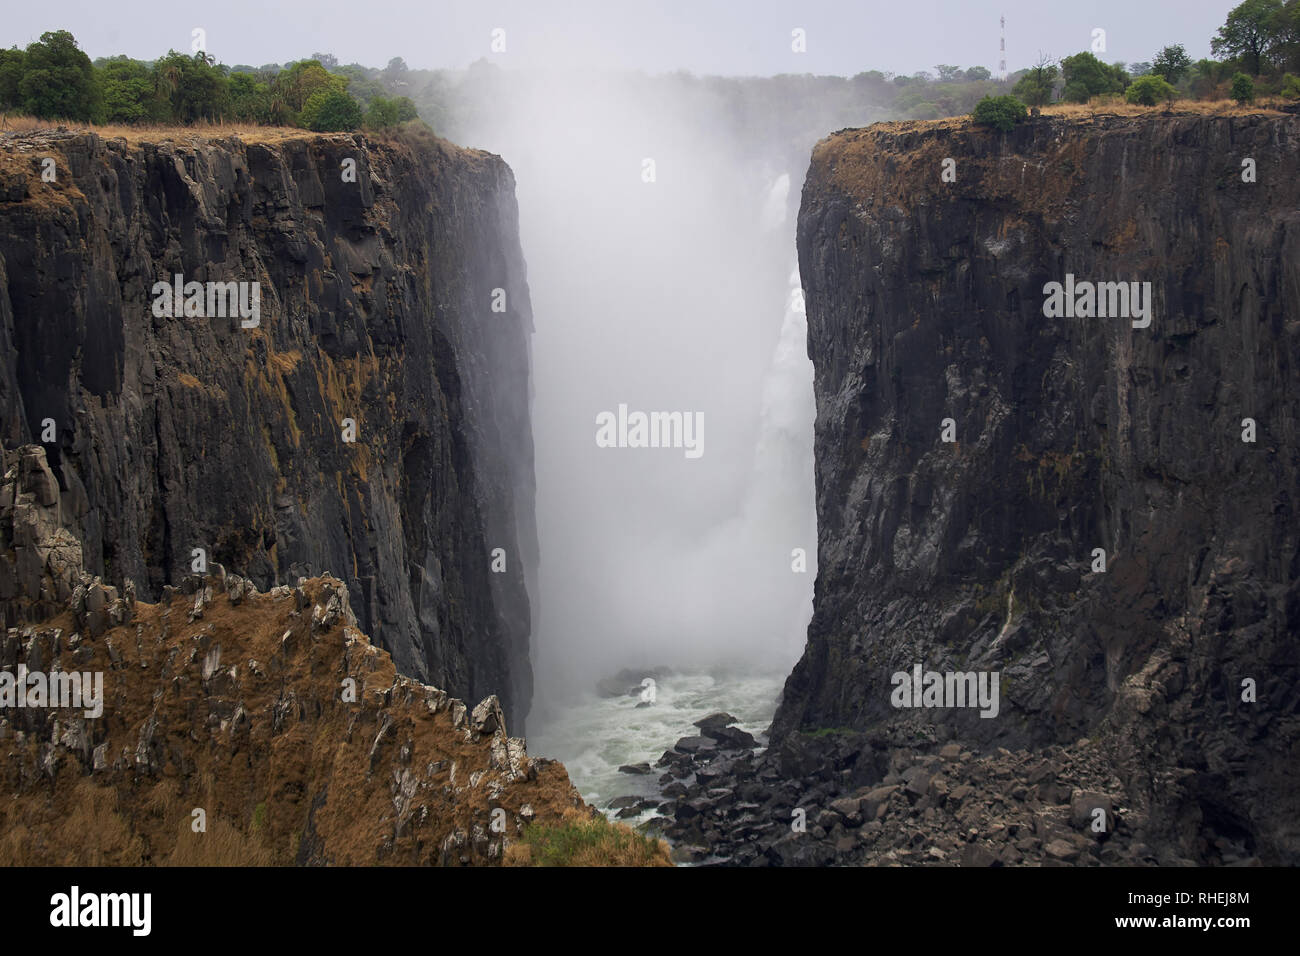 Views Of Victoria Falls Zambia During A Drought At The End